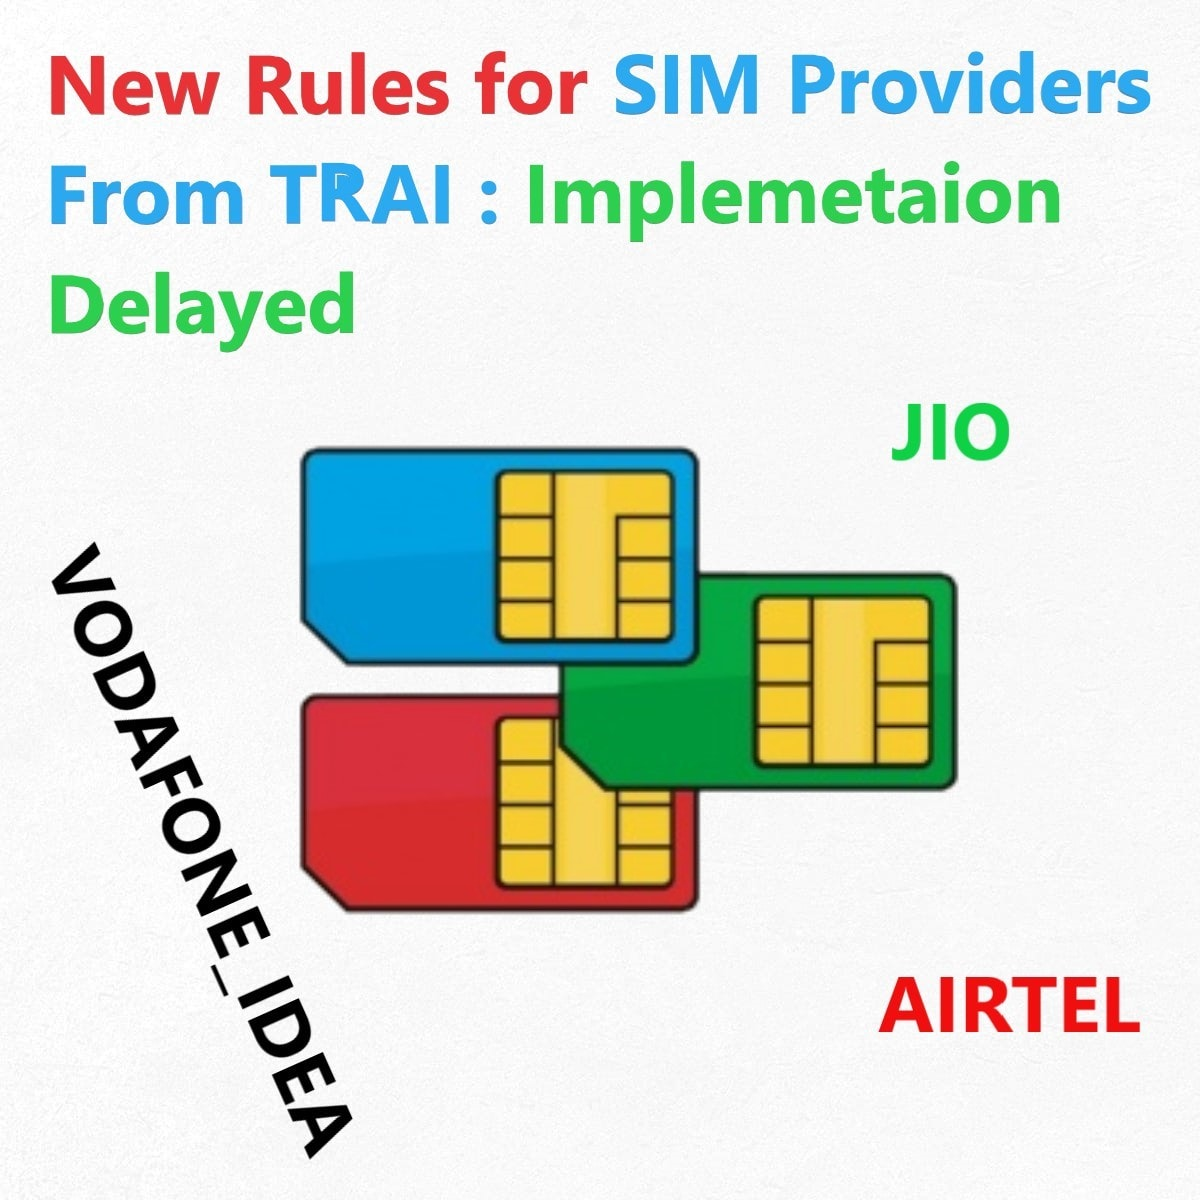 New Rules of TRAI delayed Due to Technical Issue